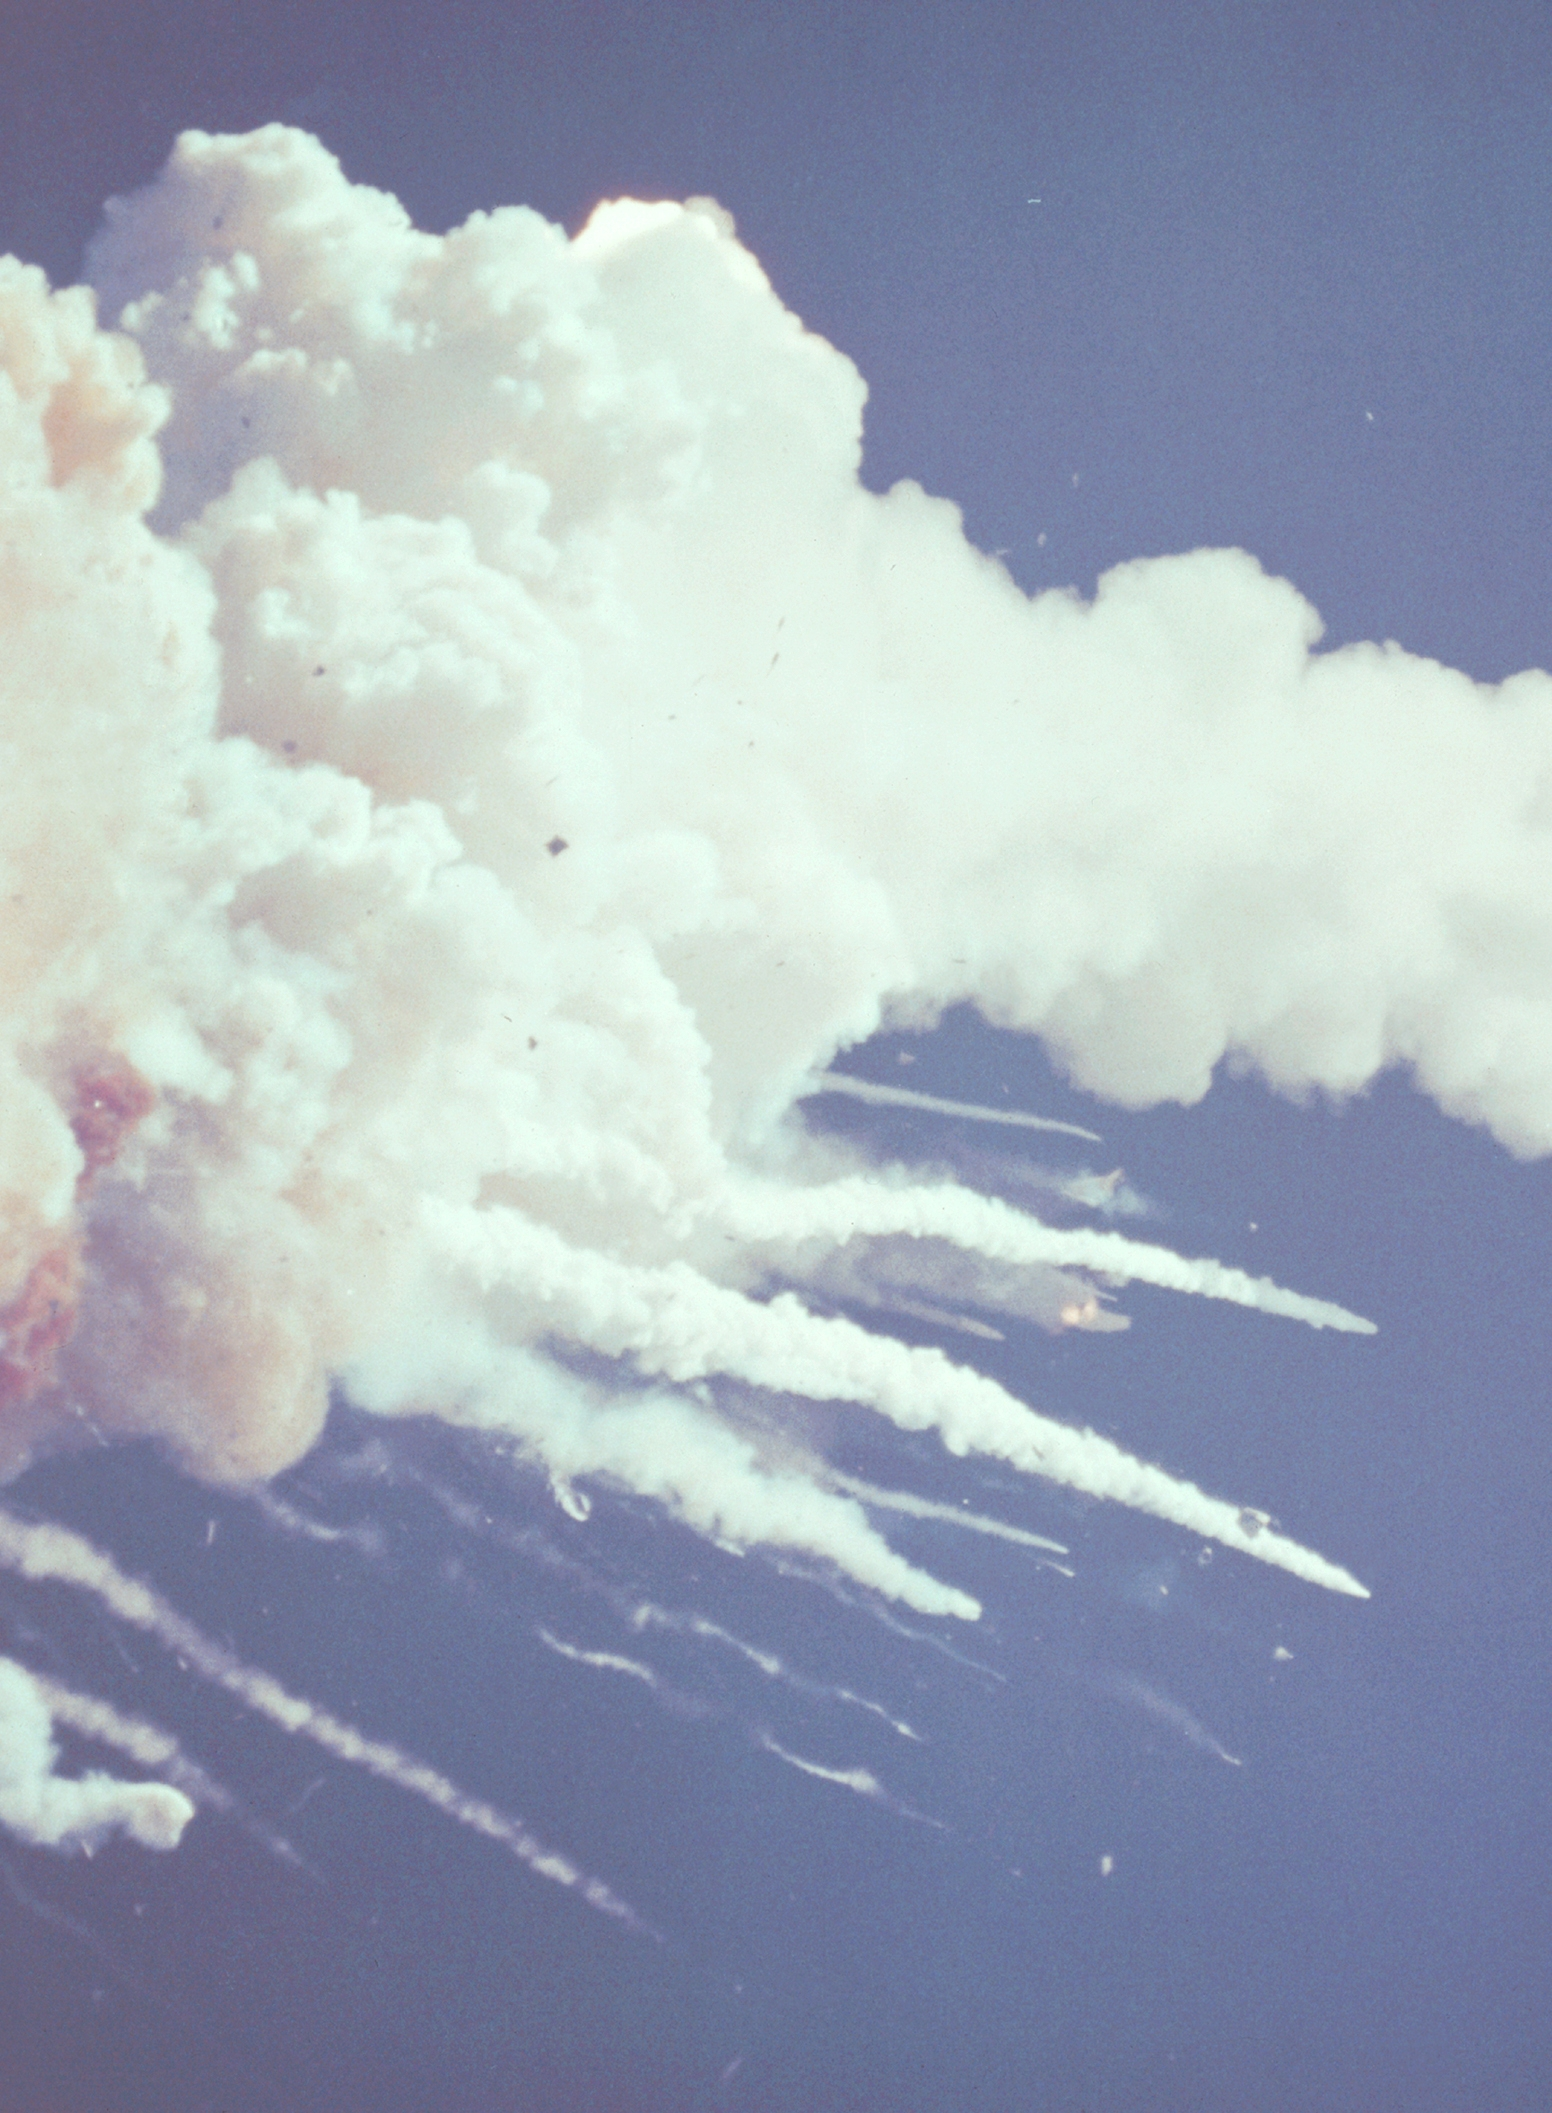 after space shuttle challenger explosion - photo #19